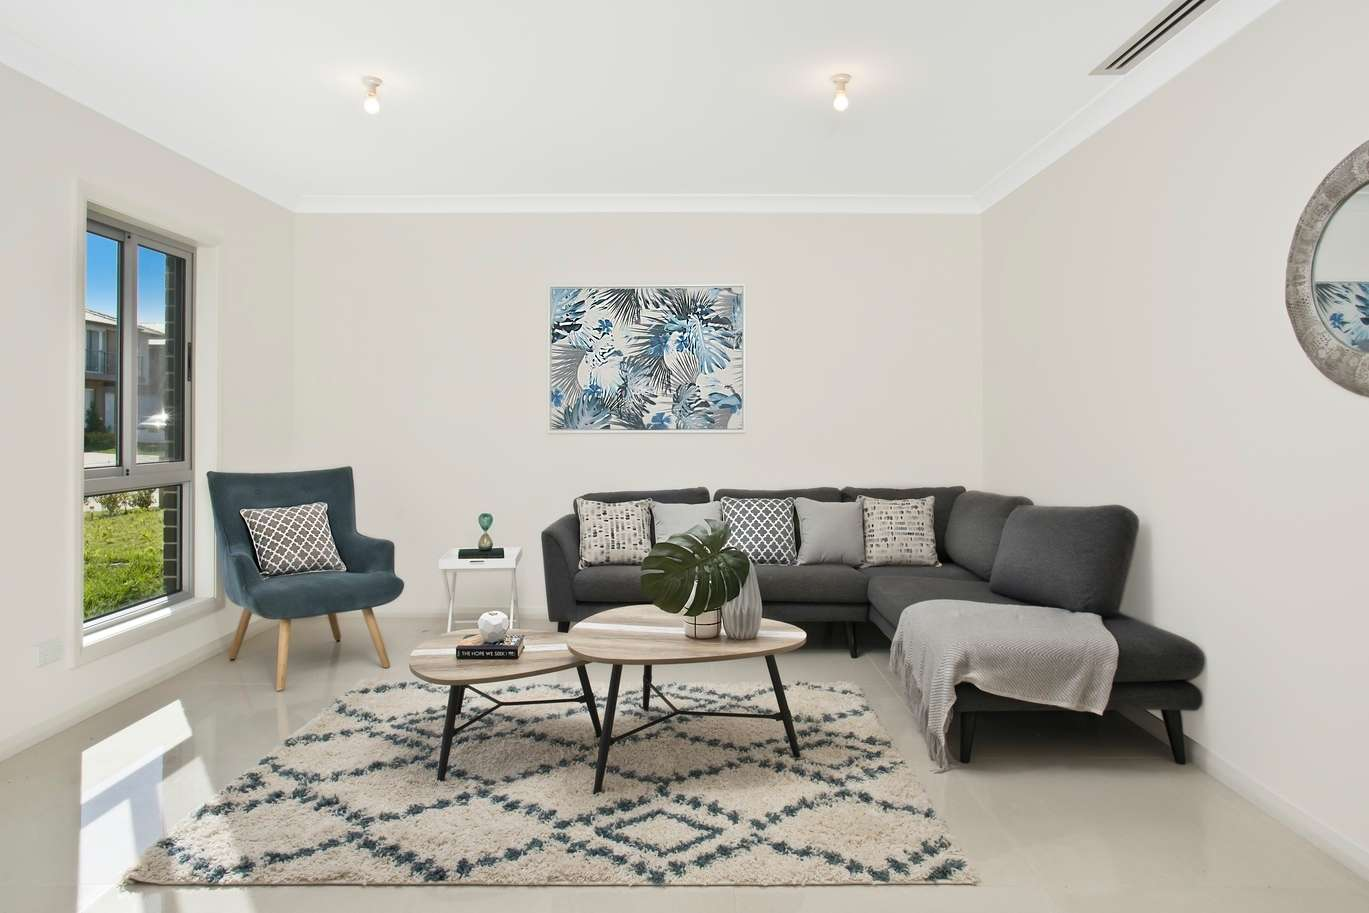 Main view of Homely house listing, 2 Mayfair Street, Schofields, NSW 2762